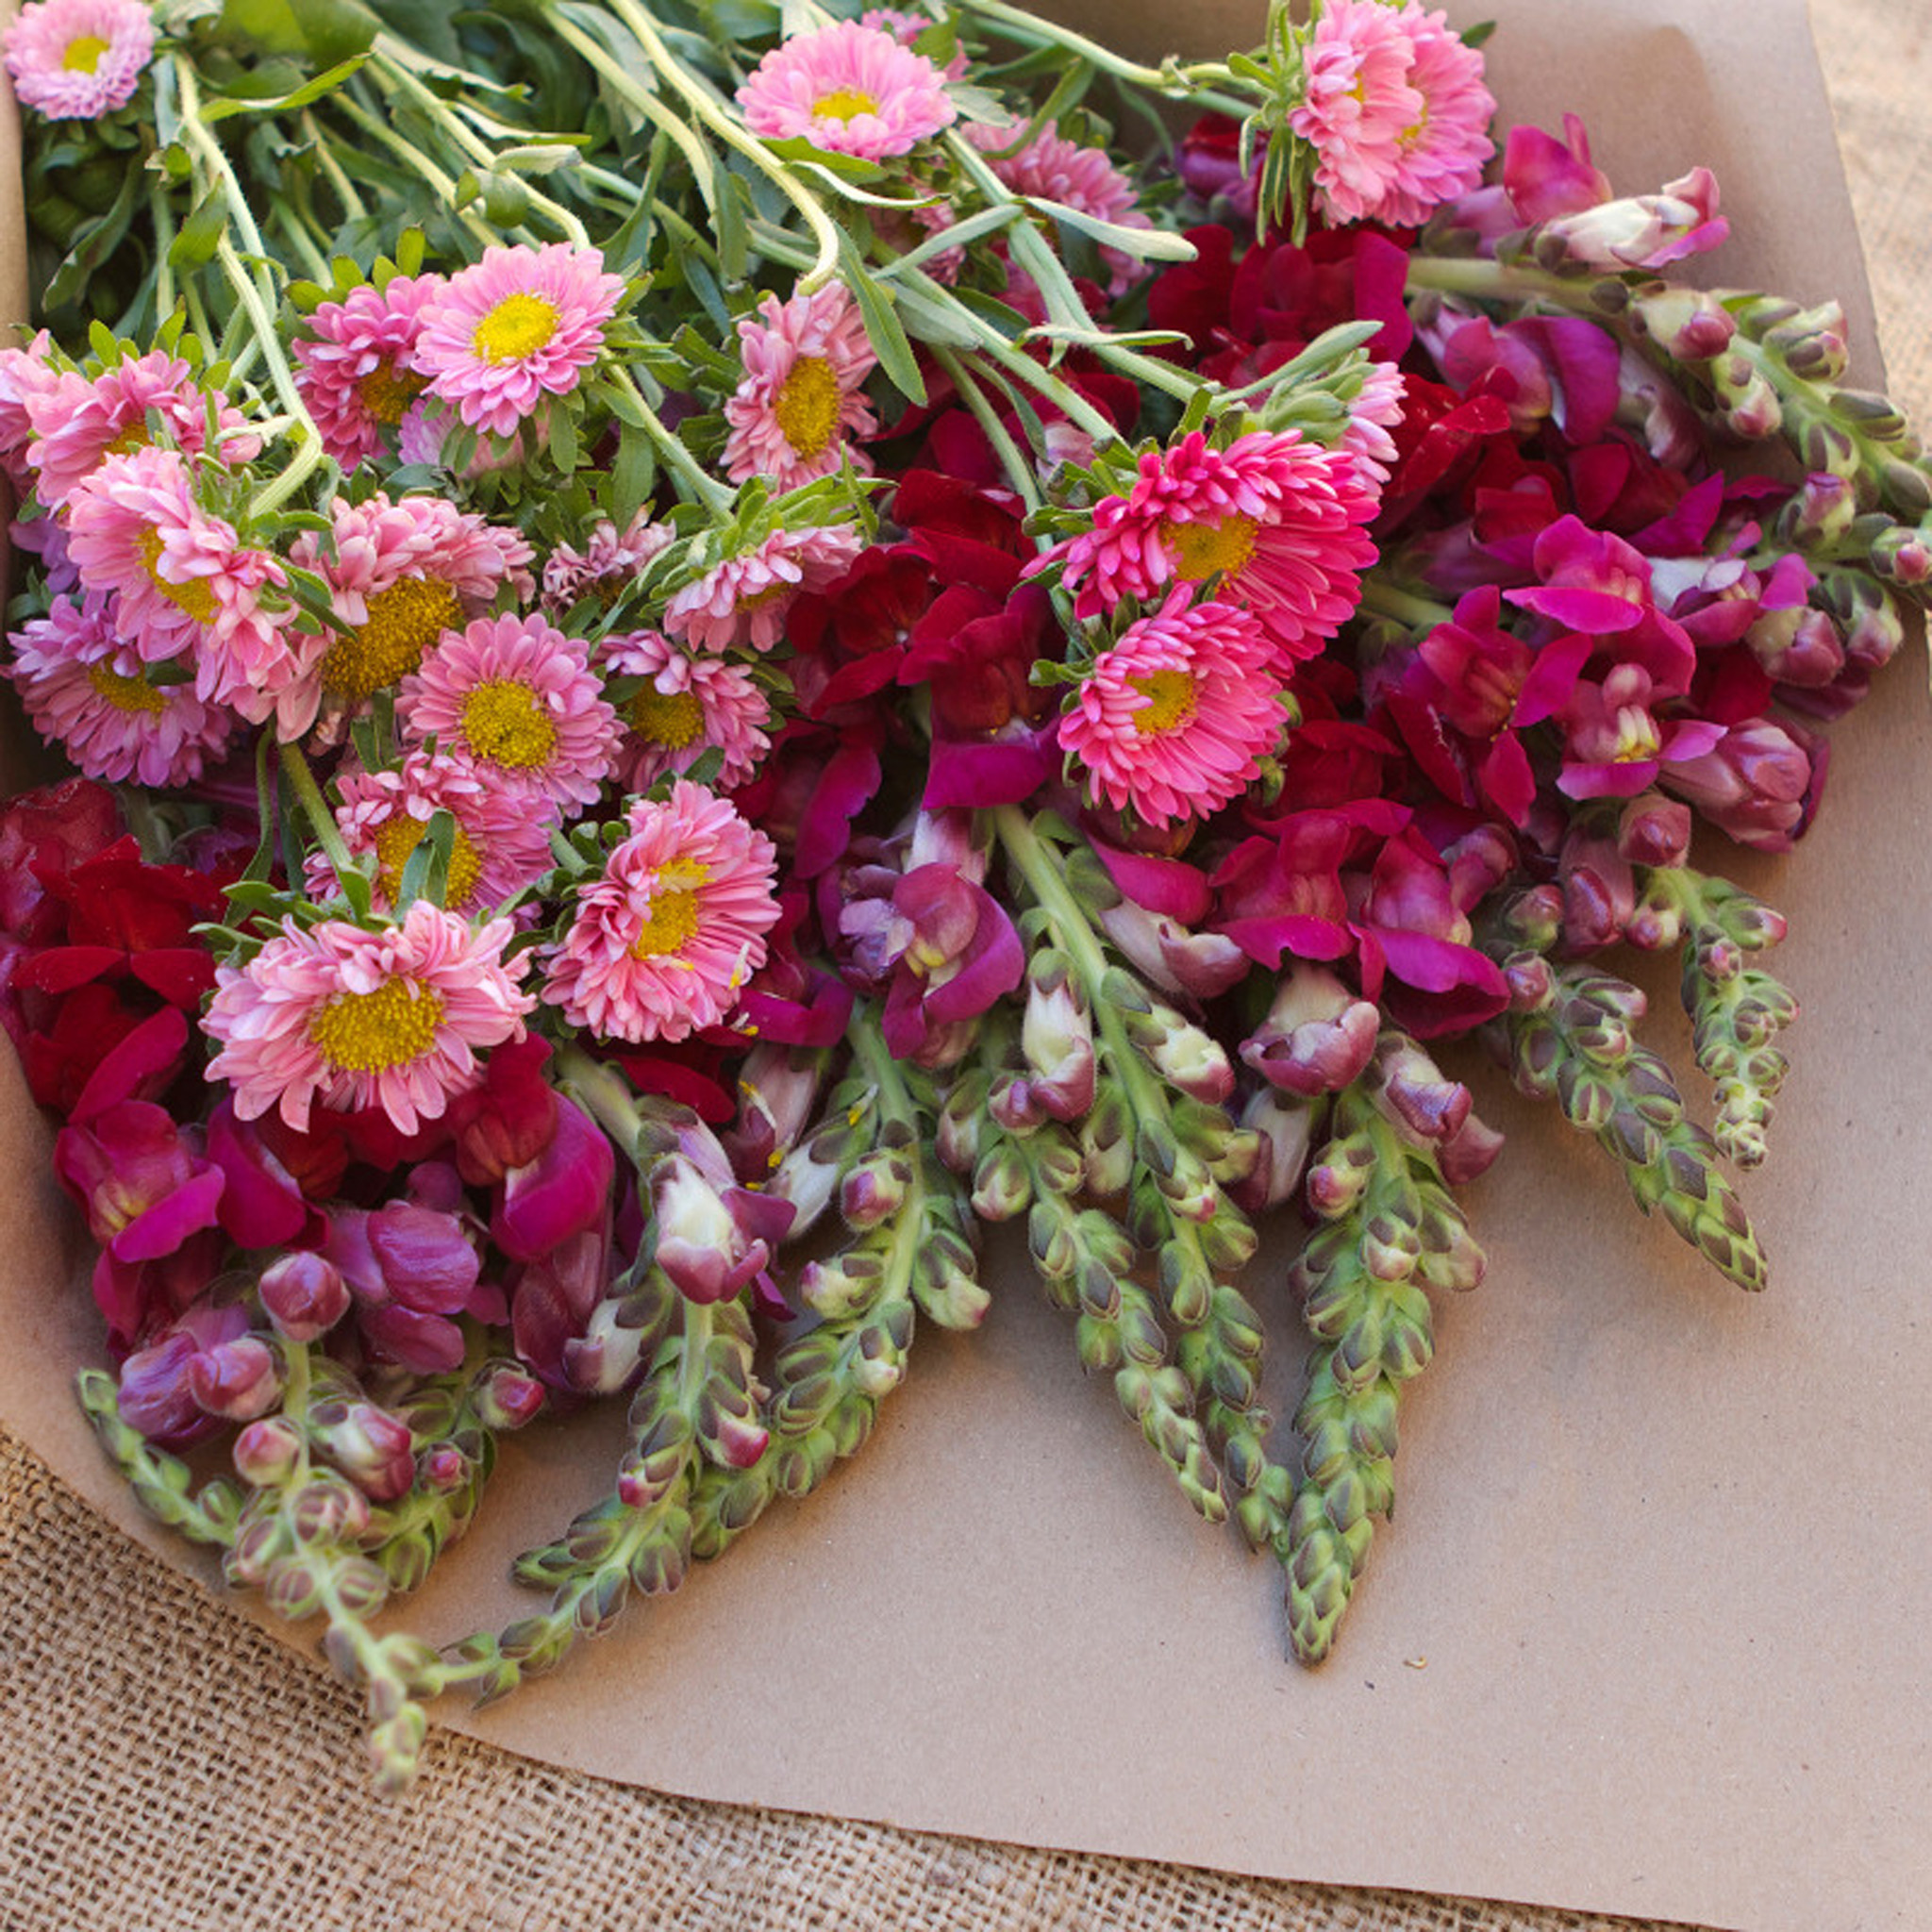 Sustainable Valentine s Day flowers Your online options are blooming L